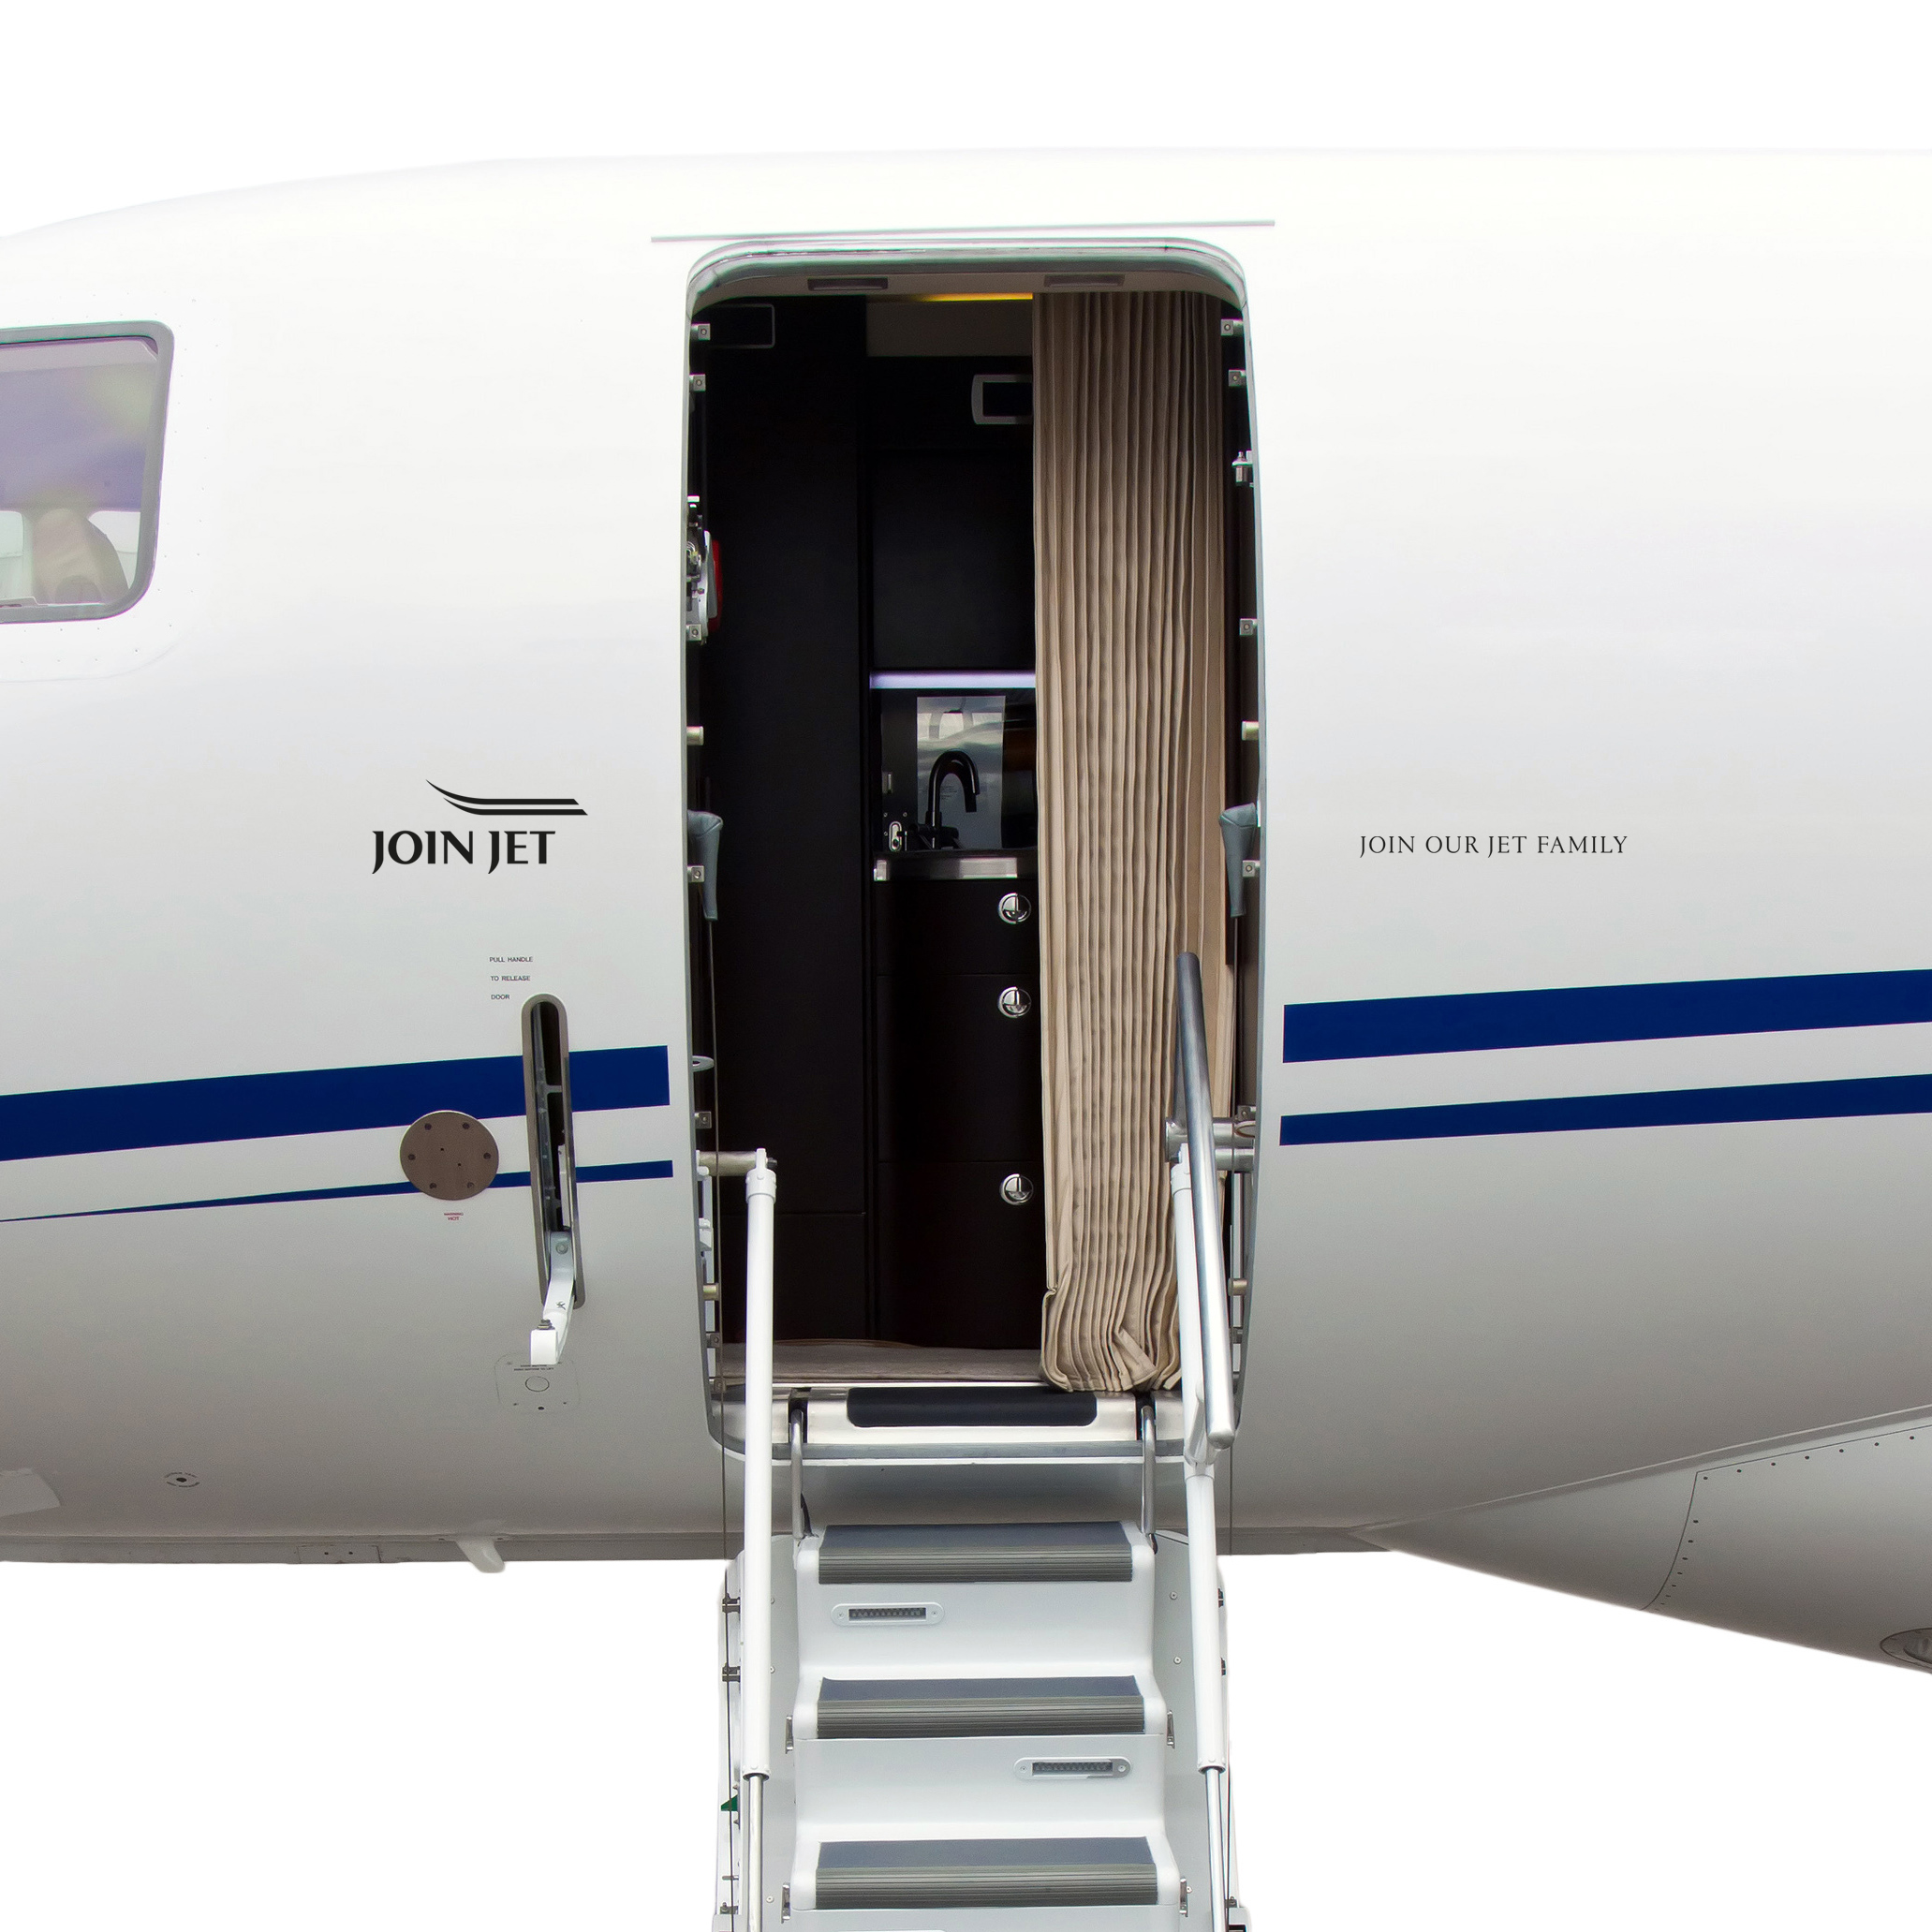 JoinJet_AirCraft_Door